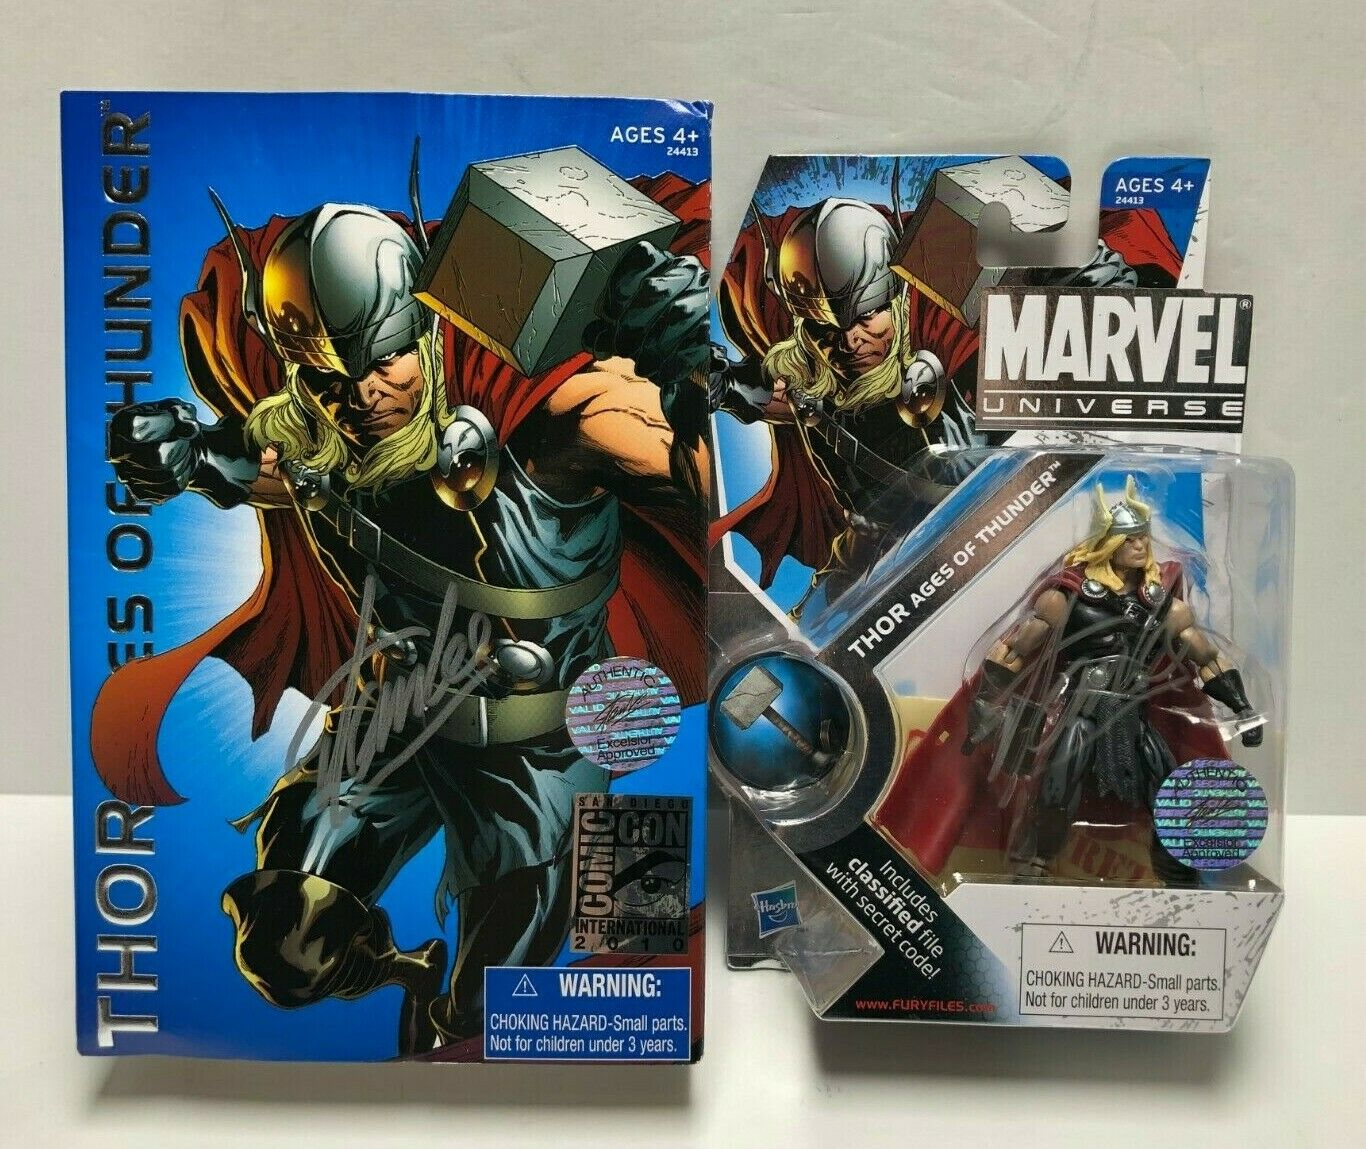 Stan Lee signed 2010 SDCC Exclusive Marvel Universe Thor figure EXCELSIOR COA